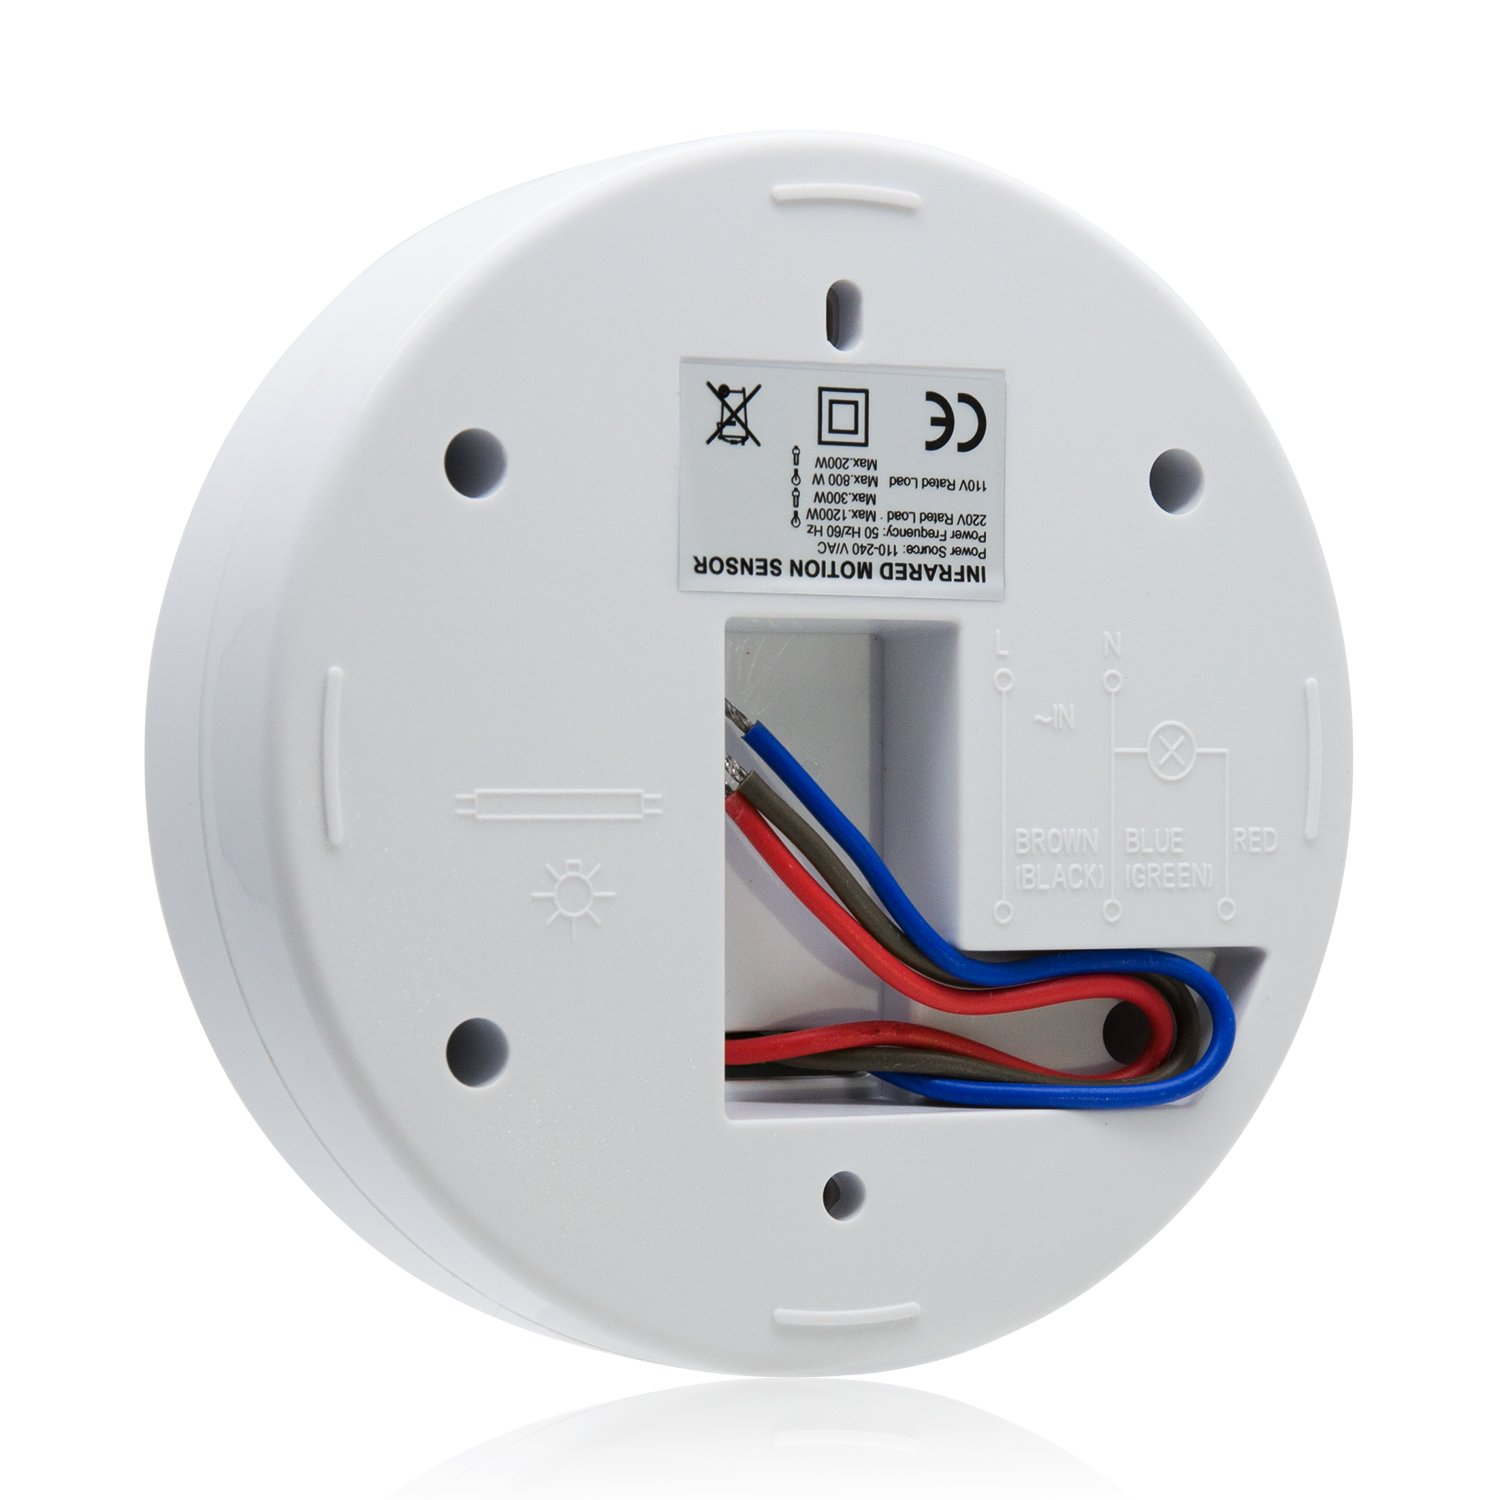 Sensky 360 Degree Ceiling Mounted Occupancy Sensor High Motion Detector Wiring Diagram On For Smoke Sensitivity Switch With 3 Detectors Time Distance And Light Adjustable